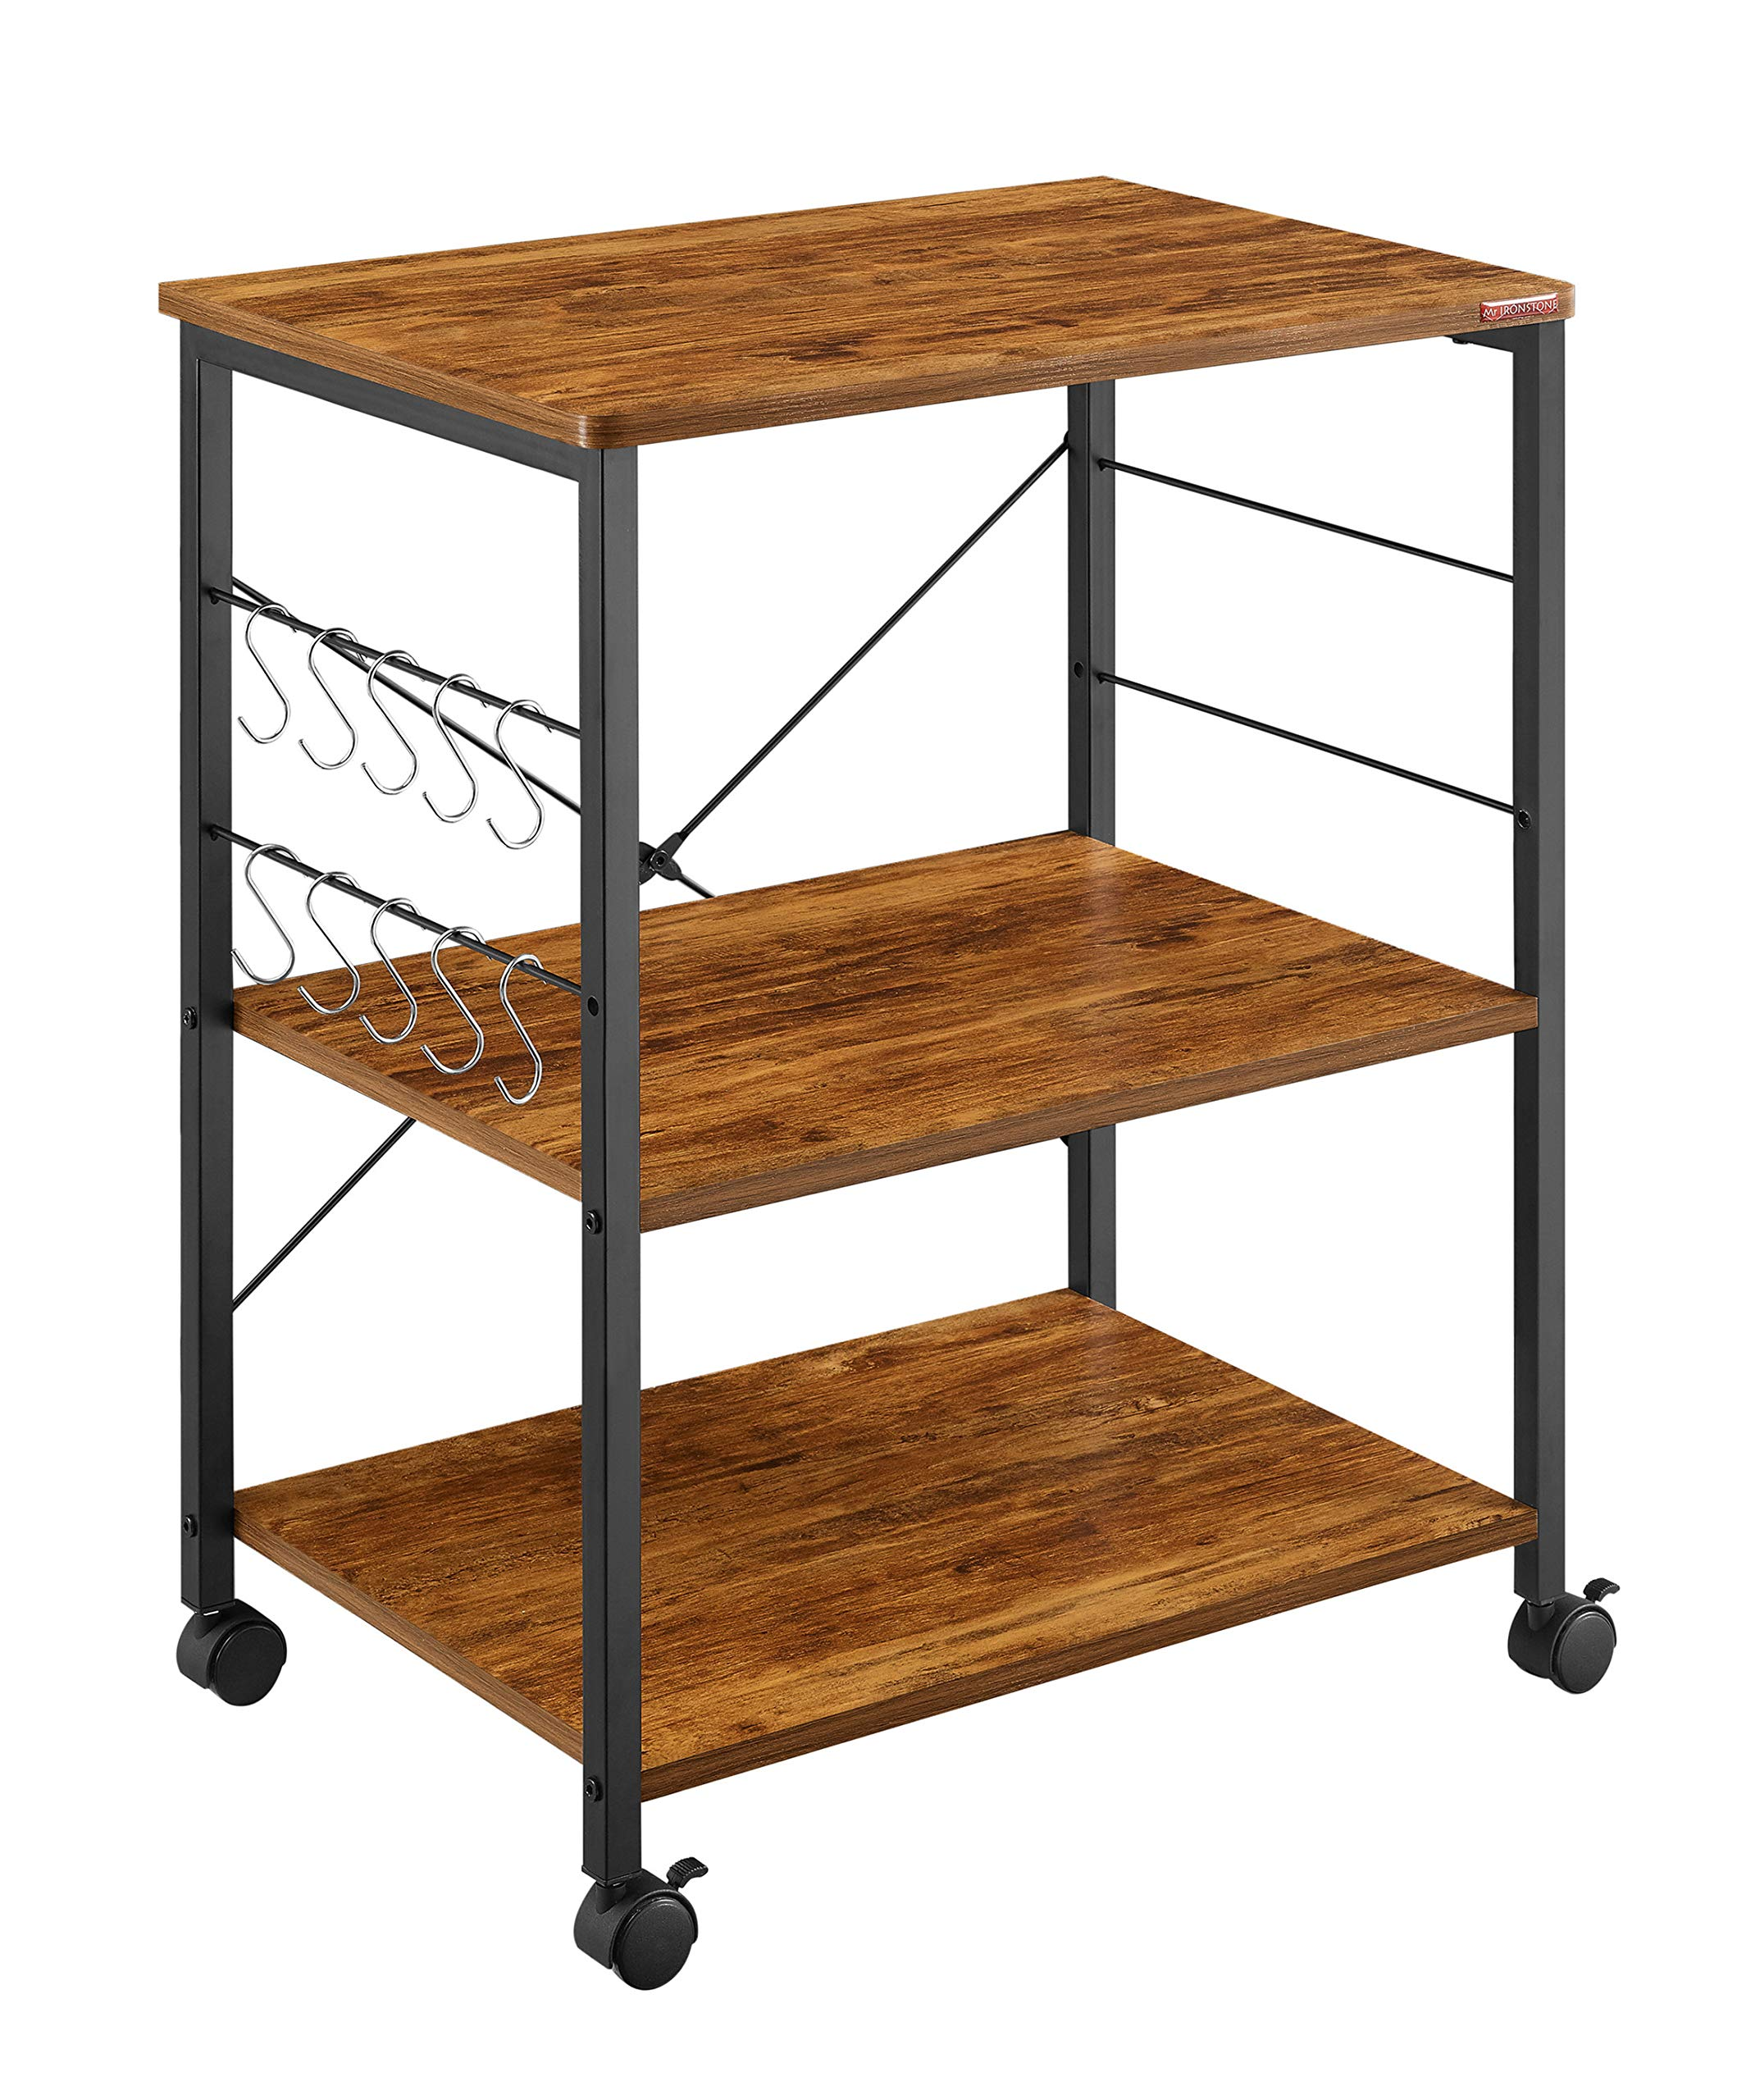 Mr IRONSTONE Kitchen Microwave Cart 3-Tier Kitchen Utility Cart Vintage Rolling Bakers Rack with 10 Hooks for Living Room Decoration by Mr IRONSTONE